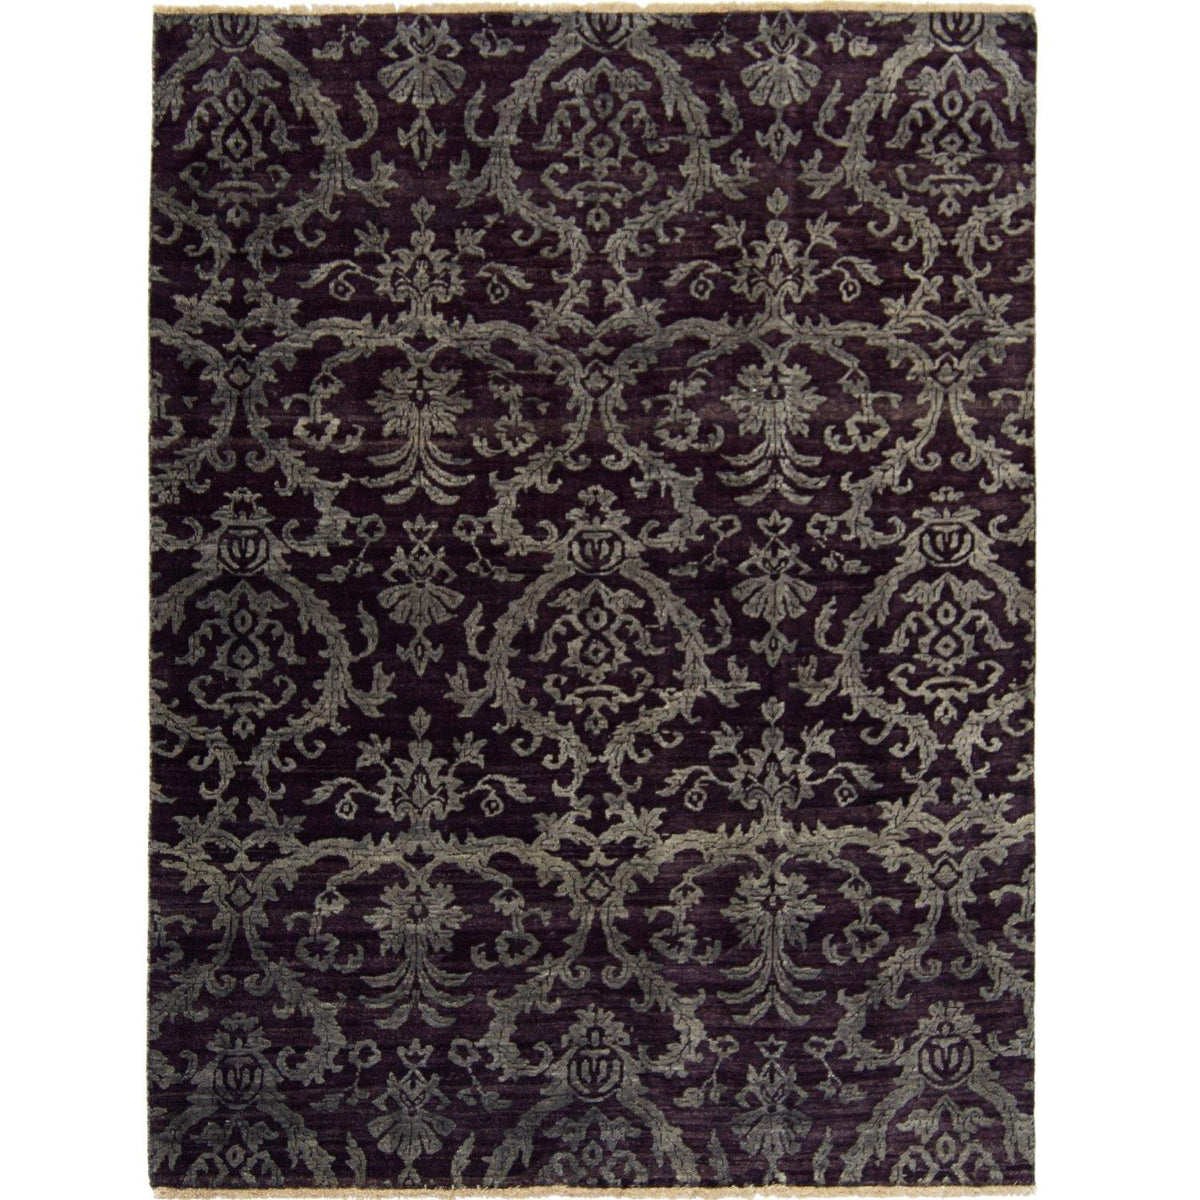 Contemporary Hand-knotted NZ Wool Damask Rug 138cm x 198cm Persian-Rug | House-of-Haghi | NewMarket | Auckland | NZ | Handmade Persian Rugs | Hand Knotted Persian Rugs